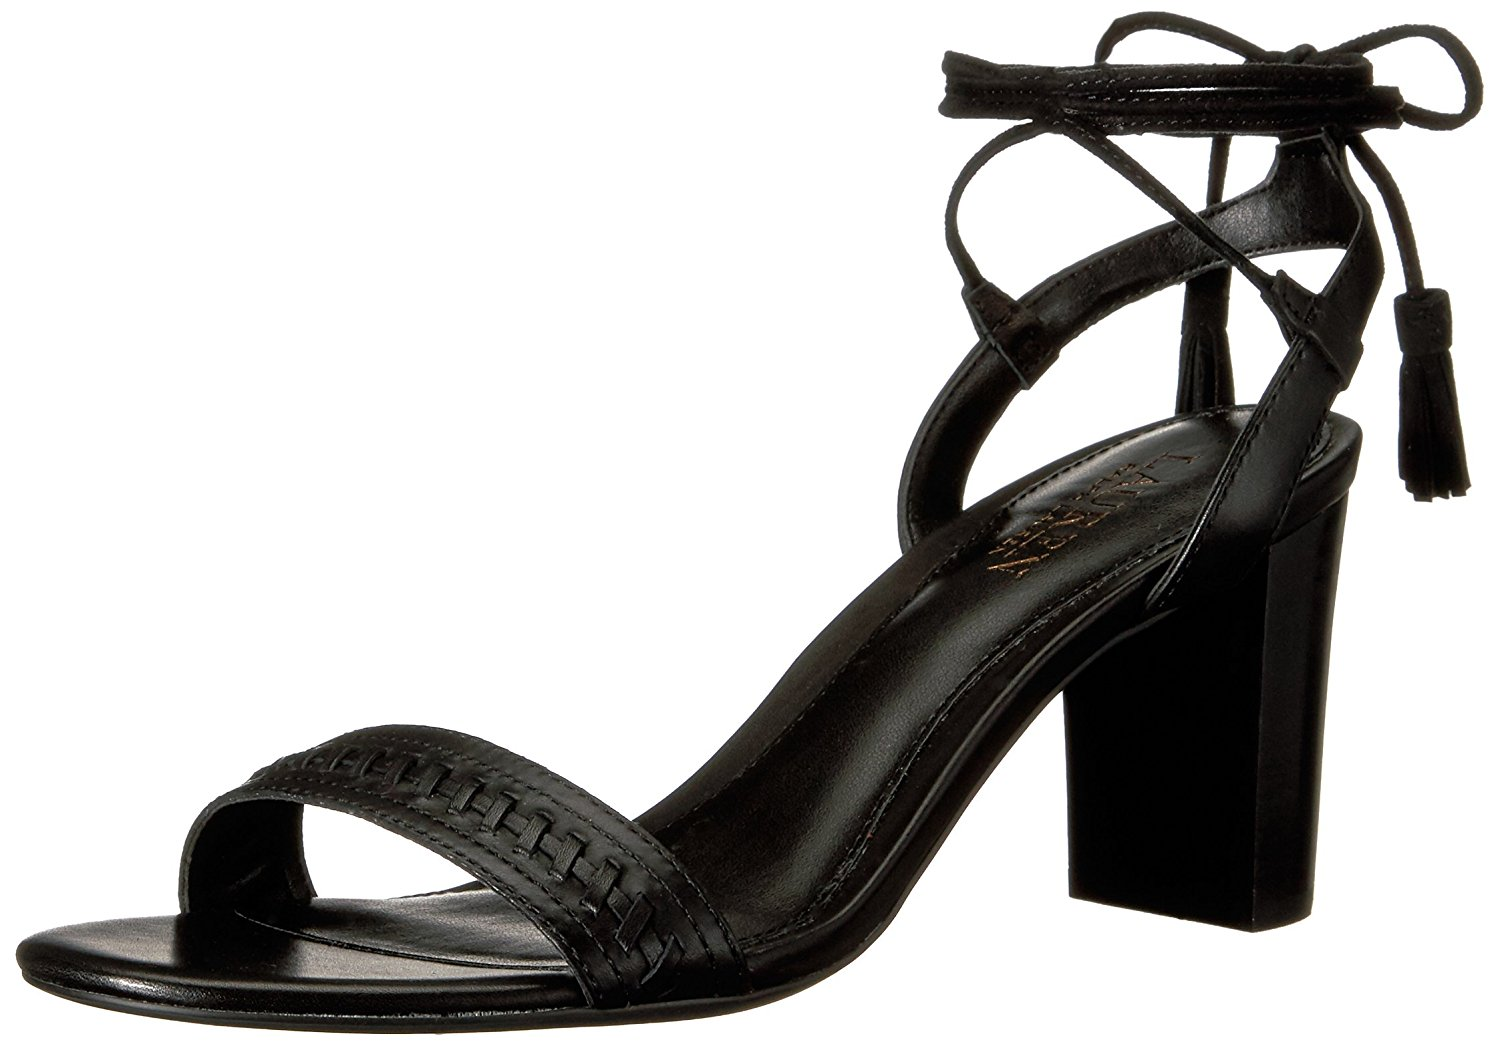 989b7647e41 Details about LAUREN by Ralph Lauren Womens Helaine Leather Open Toe Casual Strappy  Sandals